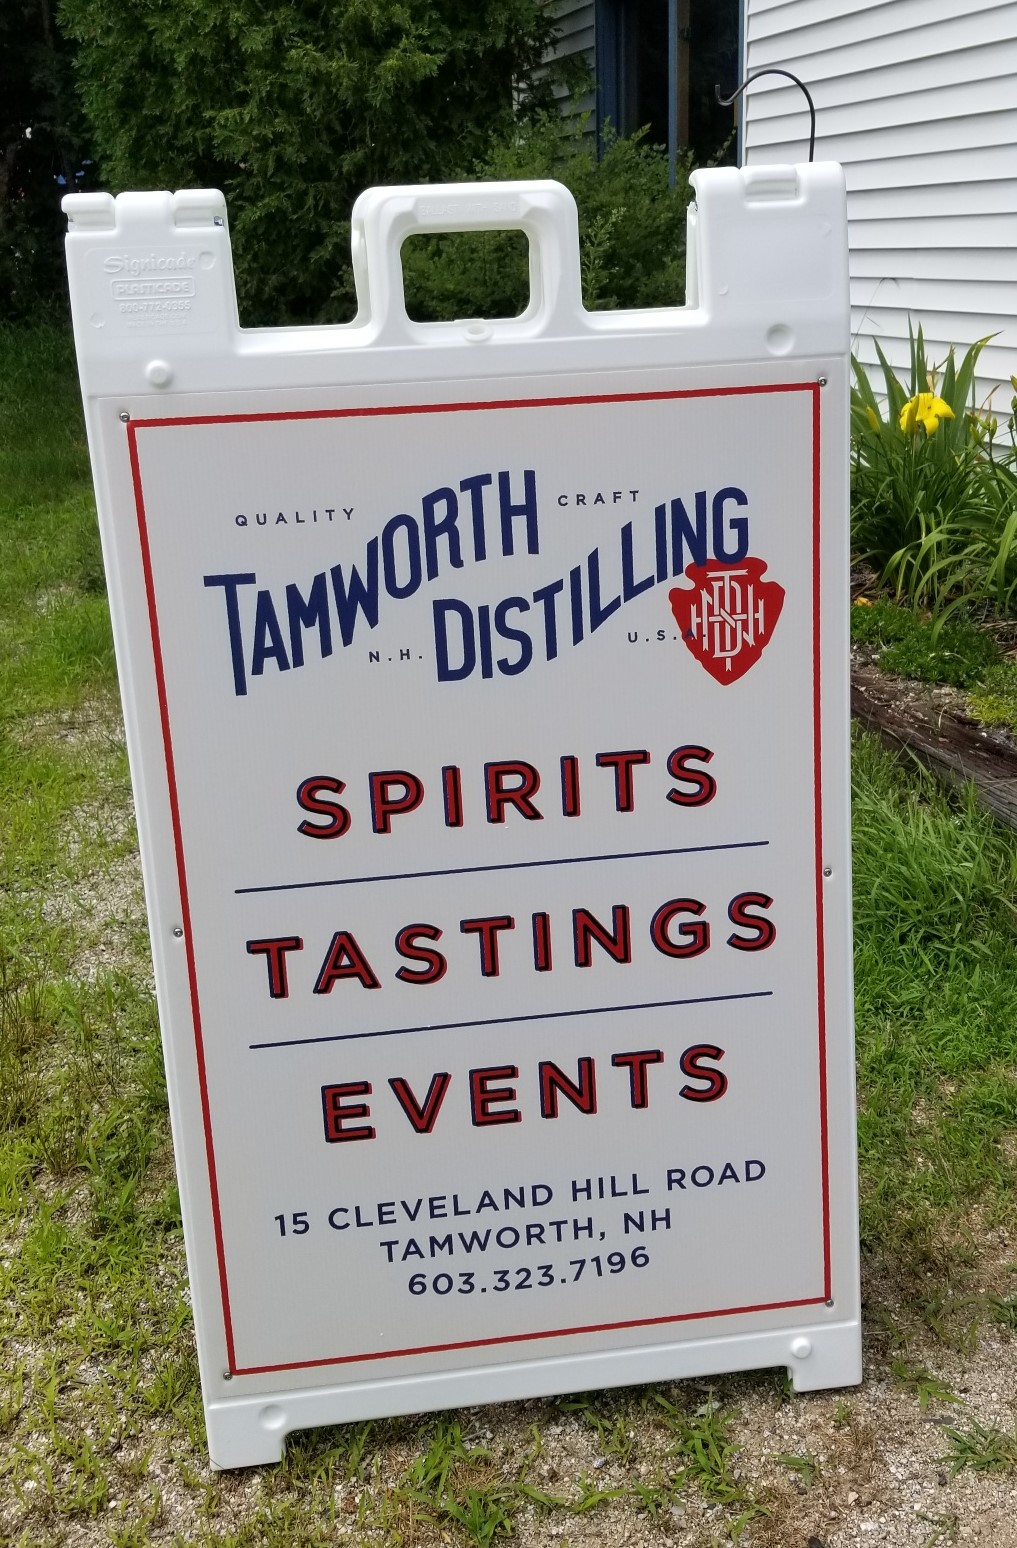 Tamworth Distilling aframe photo